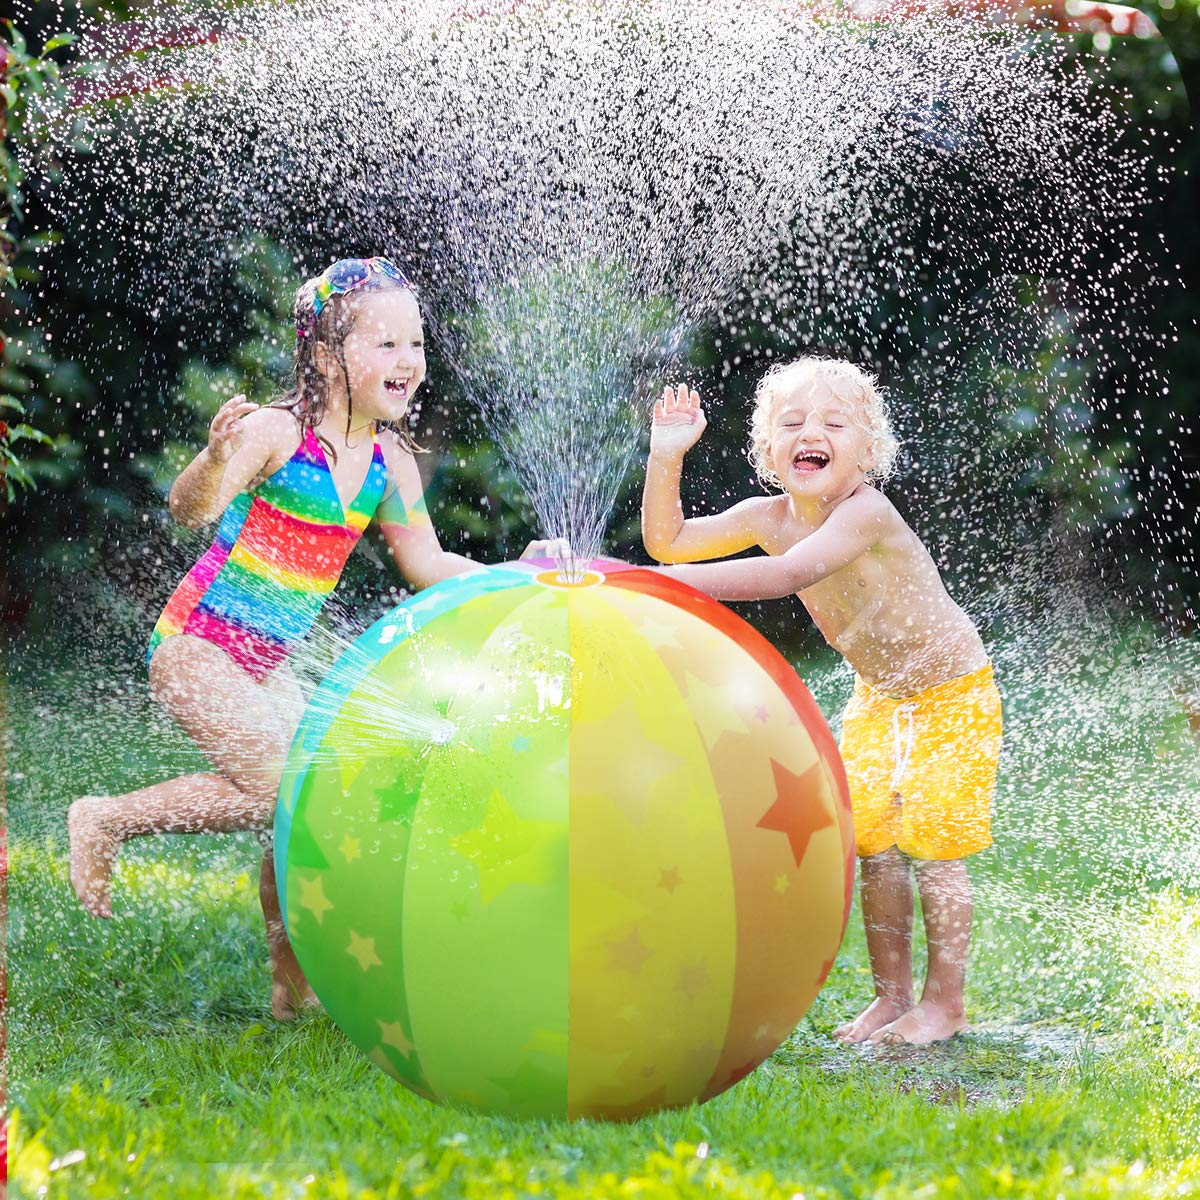 iBaseToy Sprinkler Ball Toy, Rainbow Inflatable Splash and Spray Beach Ball Water Toys for Kids Adults, Summer Outdoor Garden Backyard Swimming Beach Party Play (29.5 inches) best summer water toy